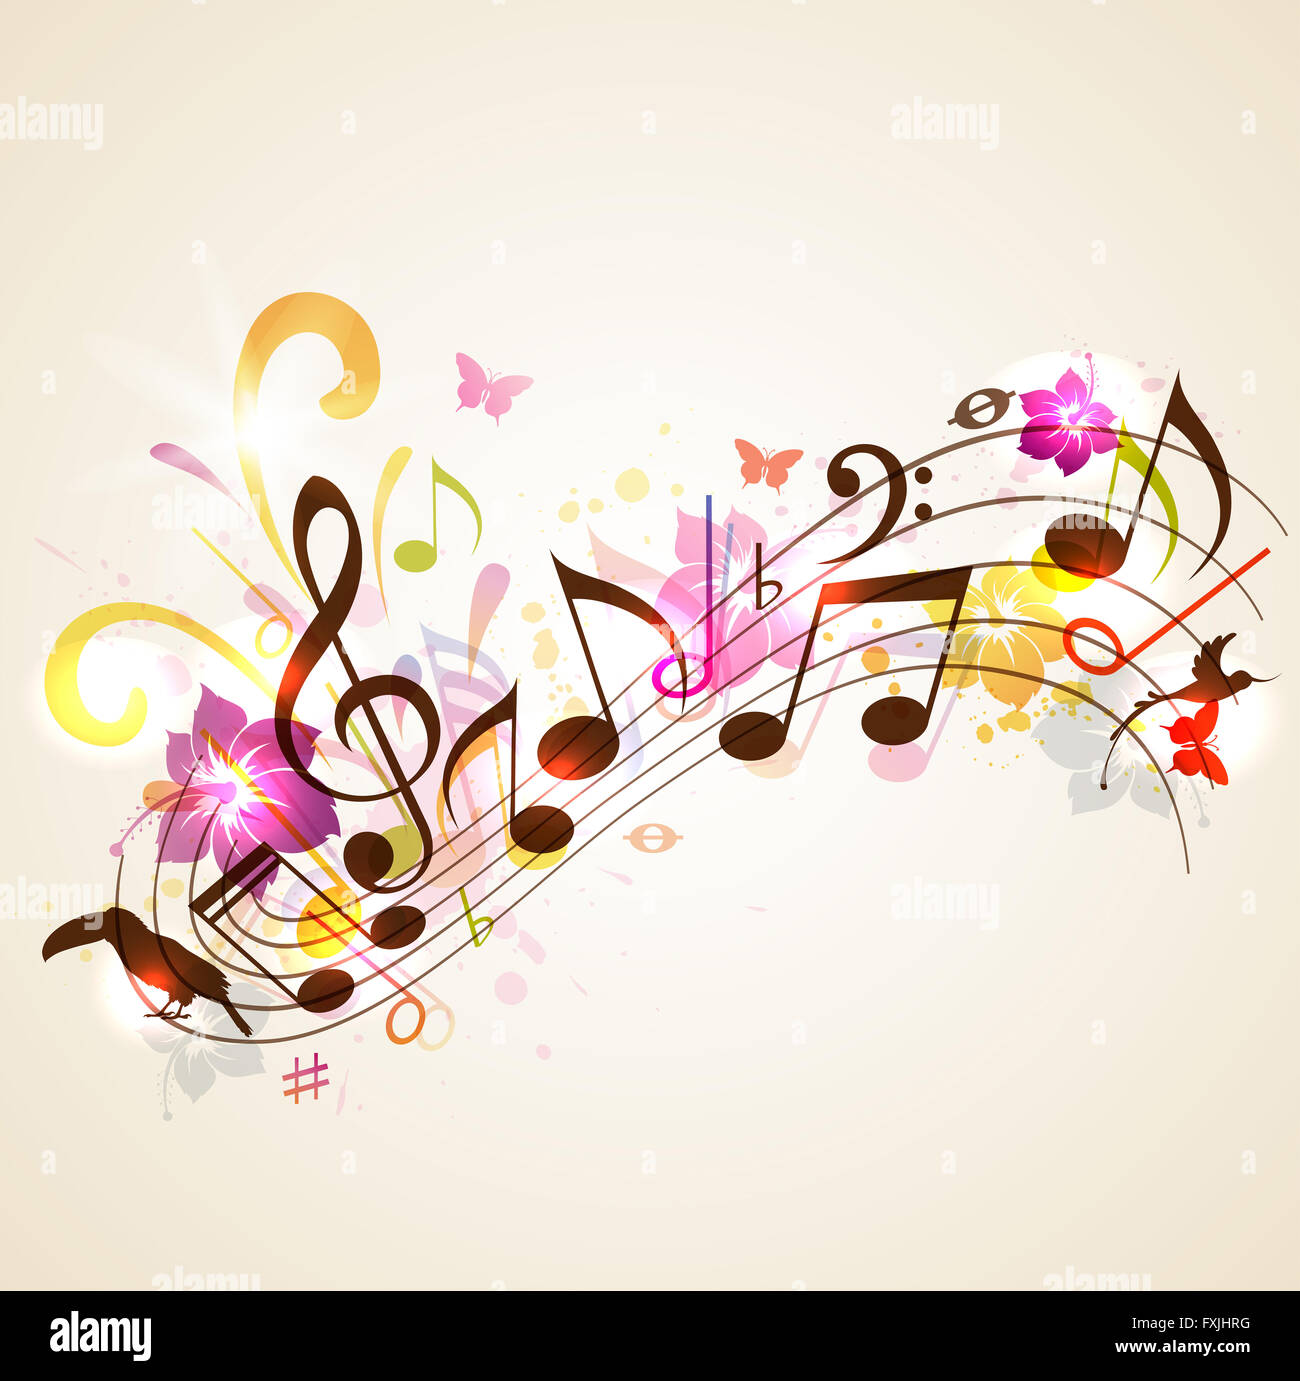 music notes backgrounds floral -#main